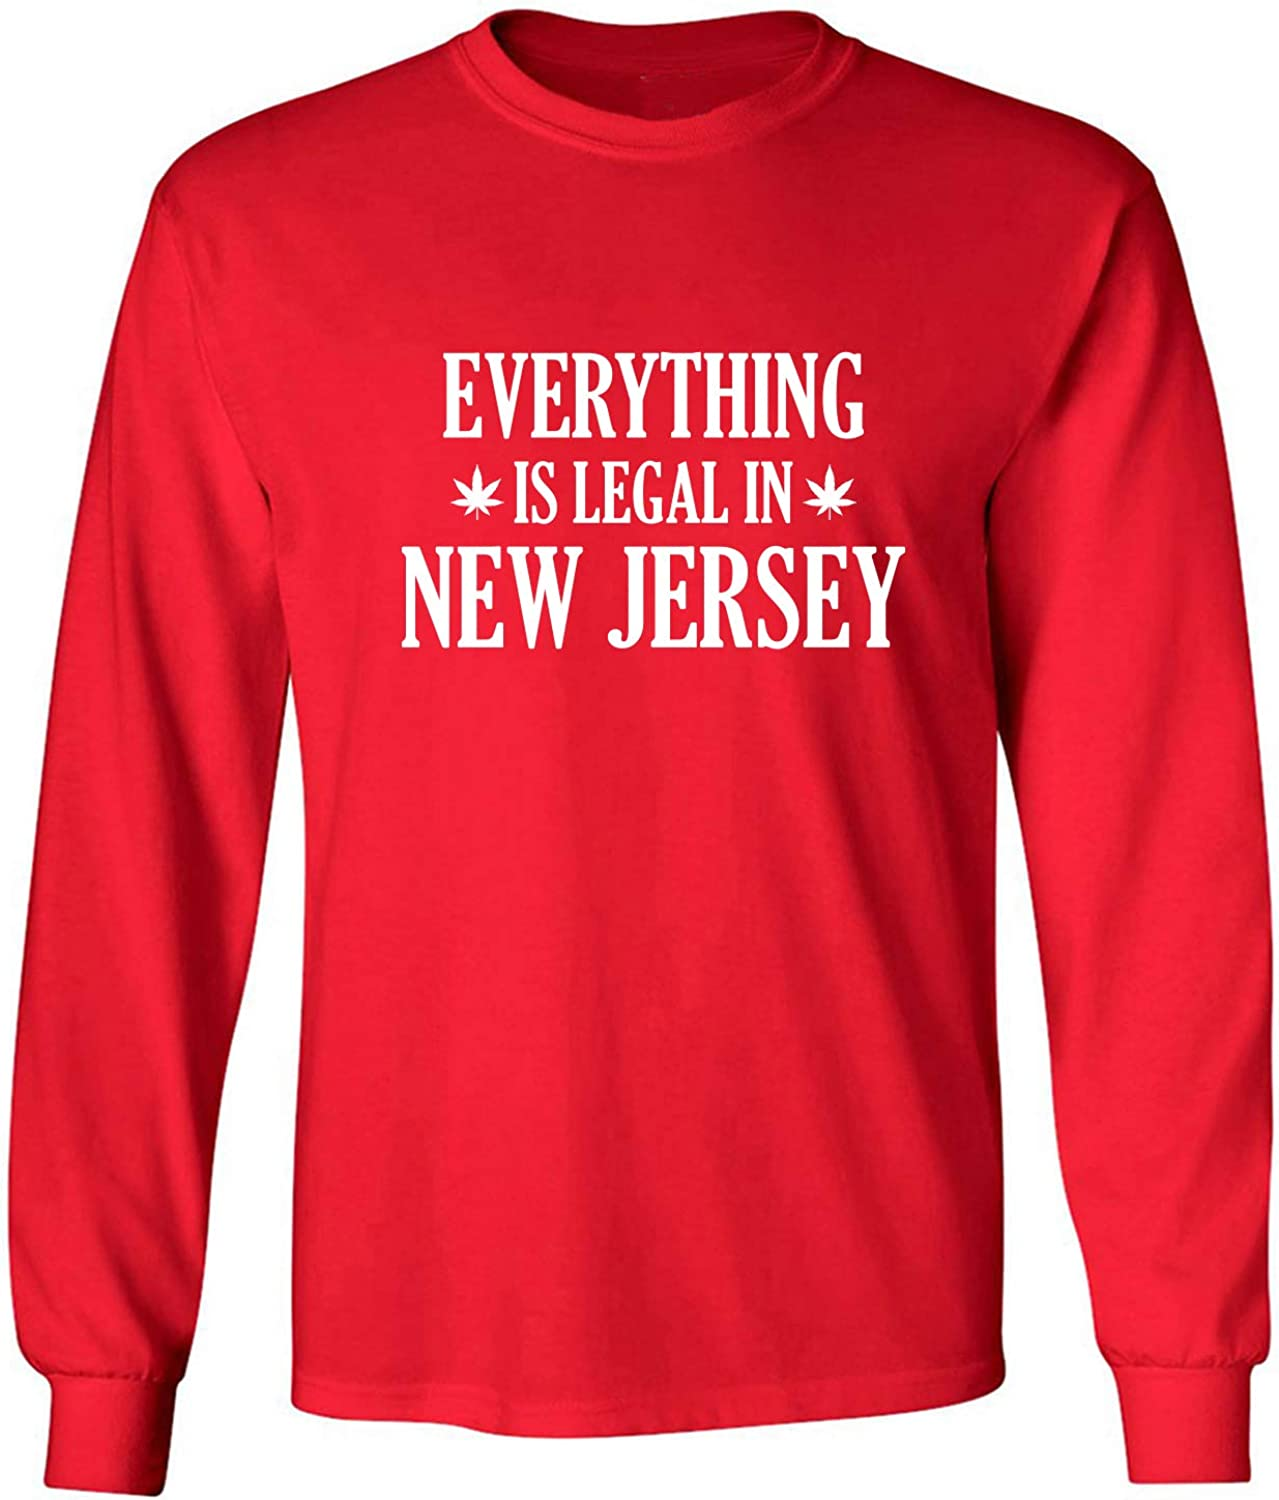 Everything is Legal in New Jersey Adult Long Sleeve T-Shirt in Red - XXXX-Large